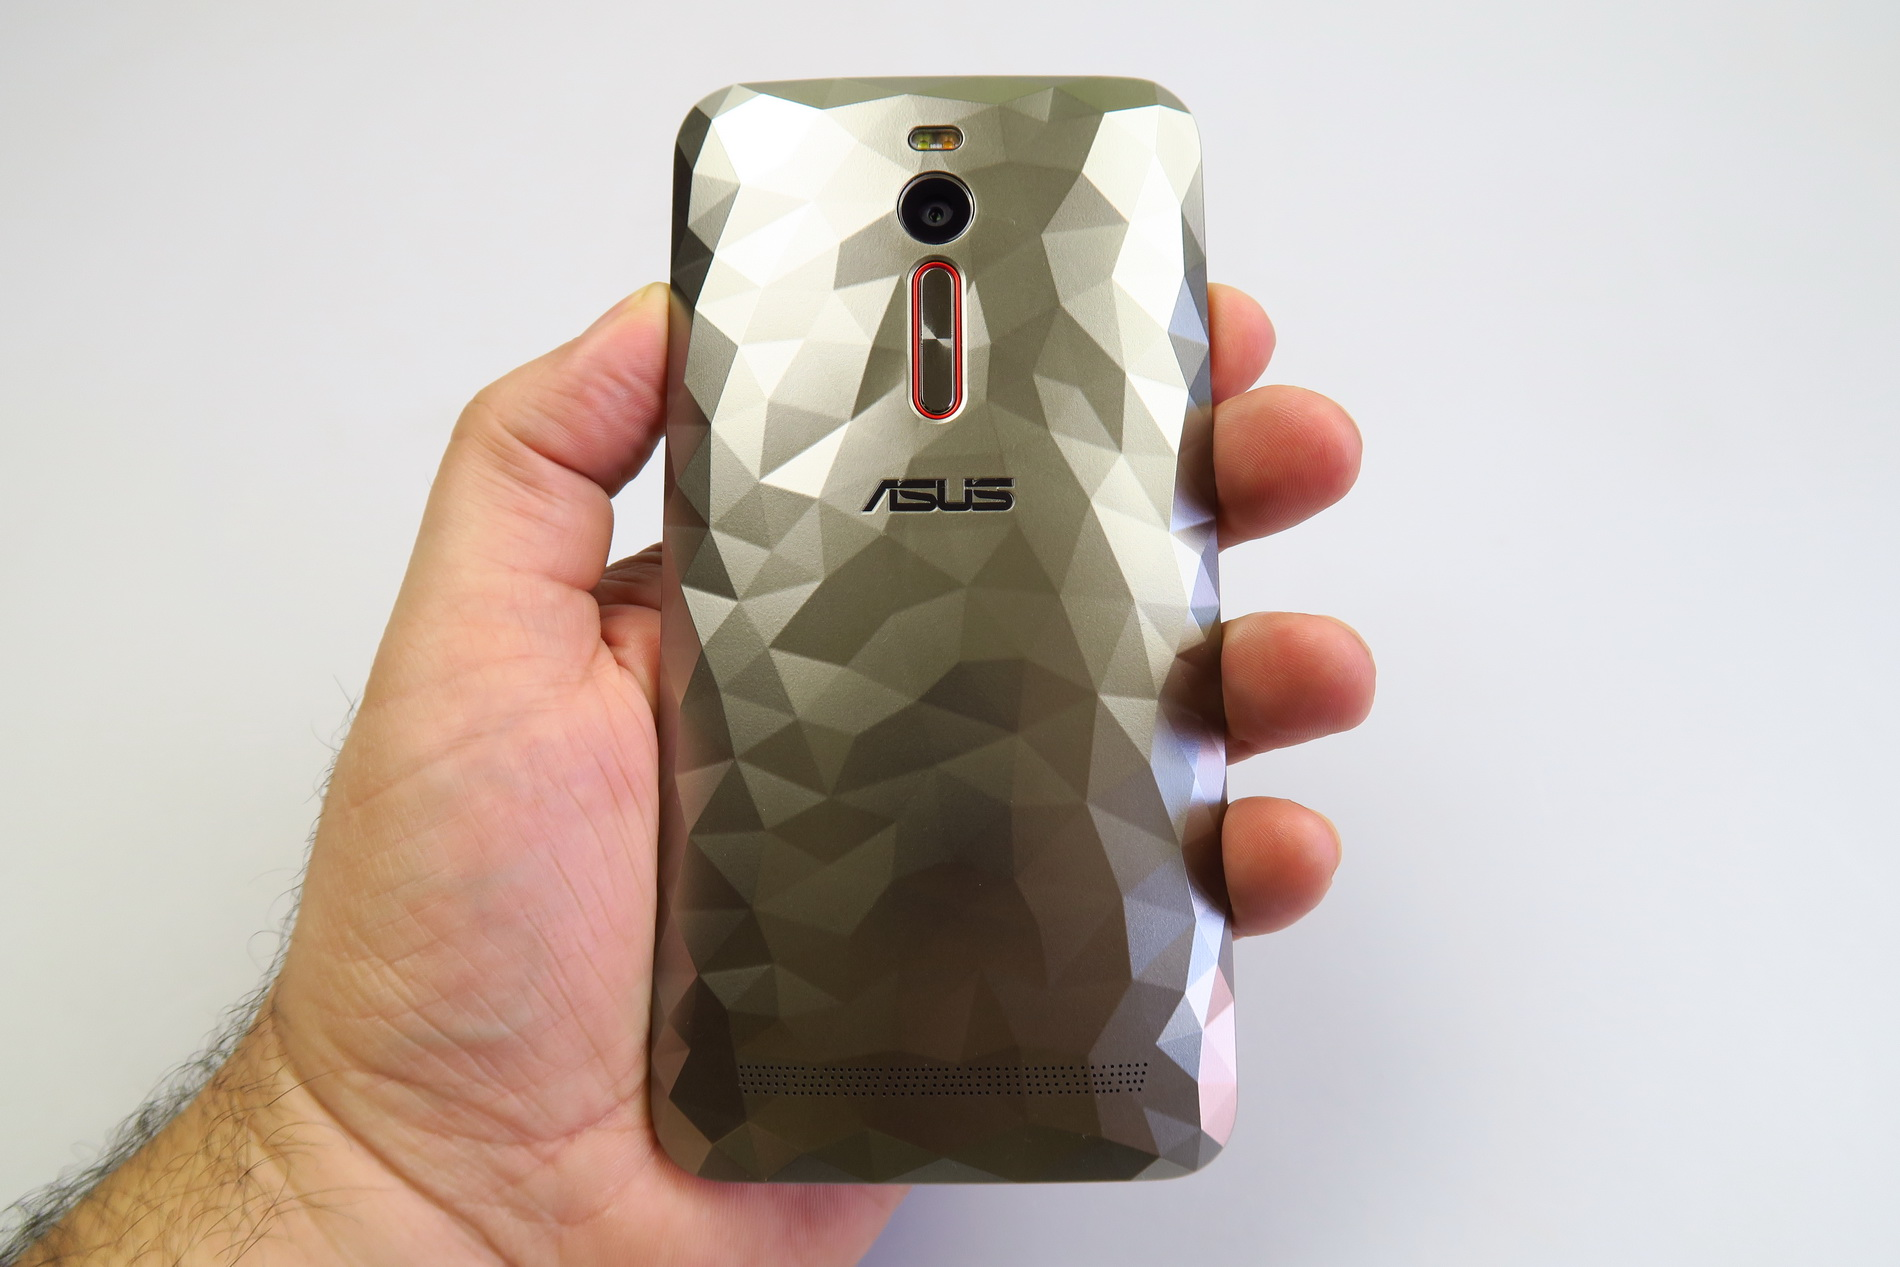 Asus Zenfone 2 Deluxe Ze551ml 64gb 4gb Ram 13 Mp Dual Sim 4g Lte 55 Ram4 32gb Inches Polygon Silver